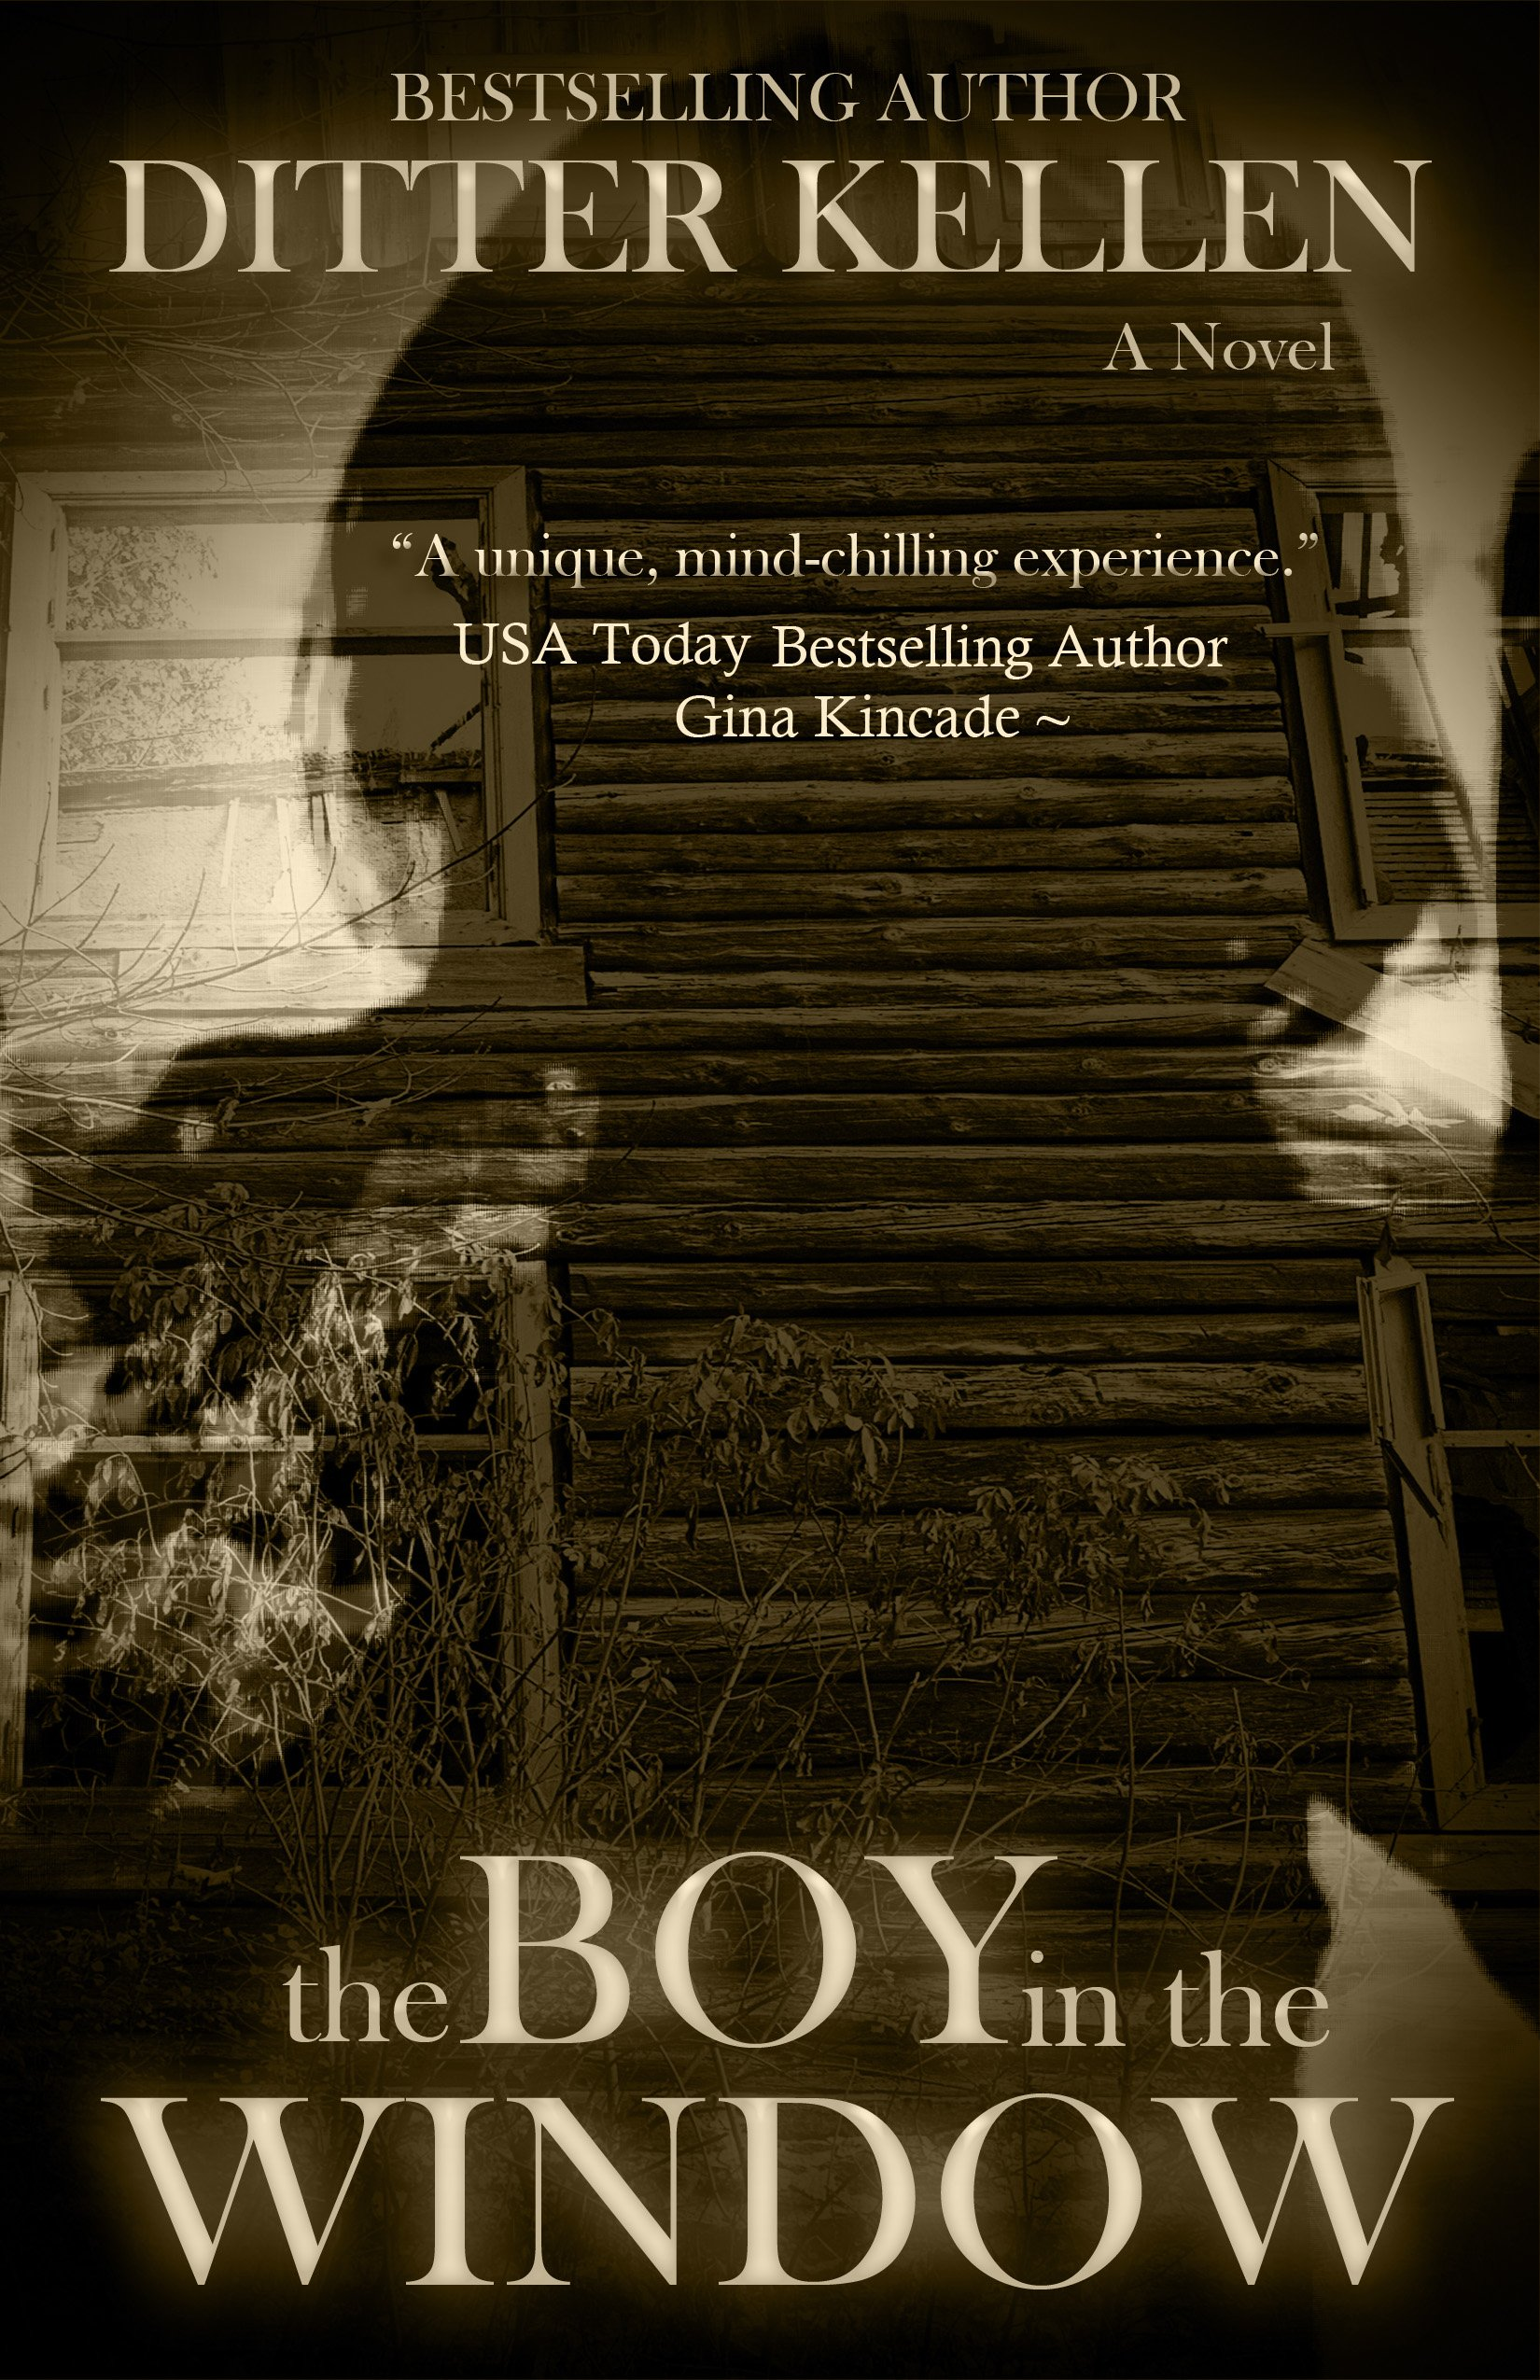 The Boy in the Window: A Paranormal Thriller